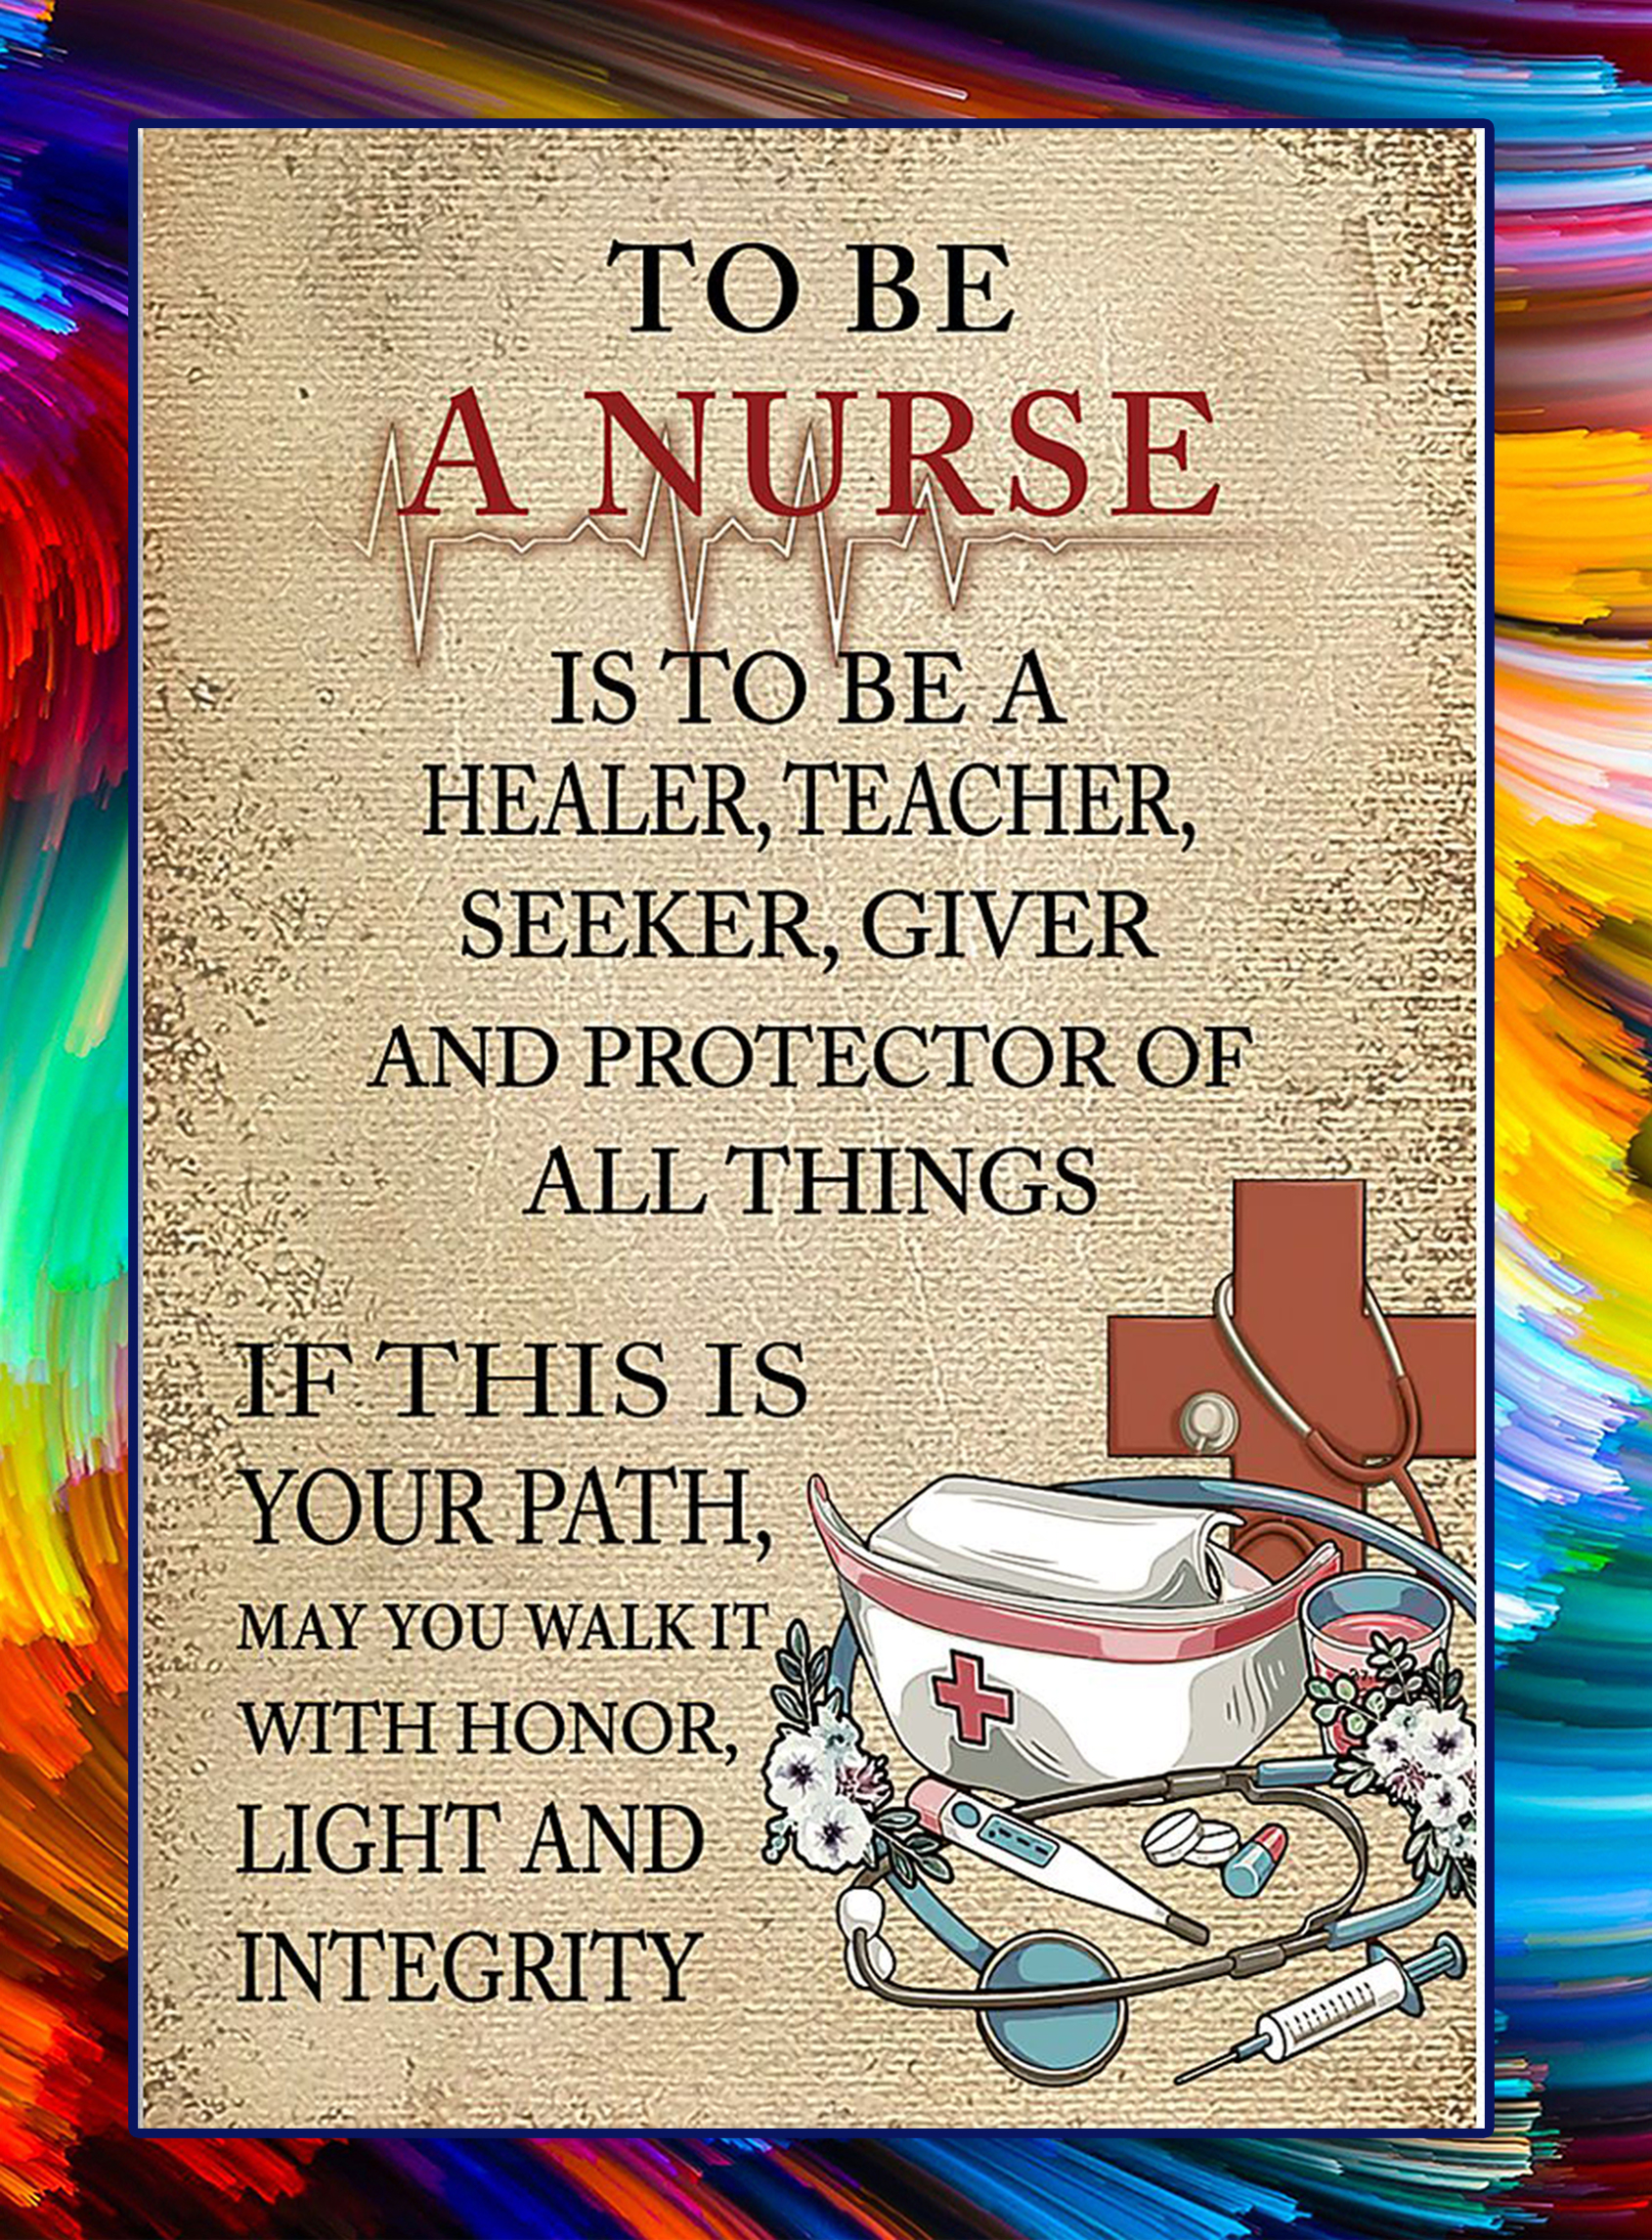 To be a nurse is to be a healer teacher poster - A1